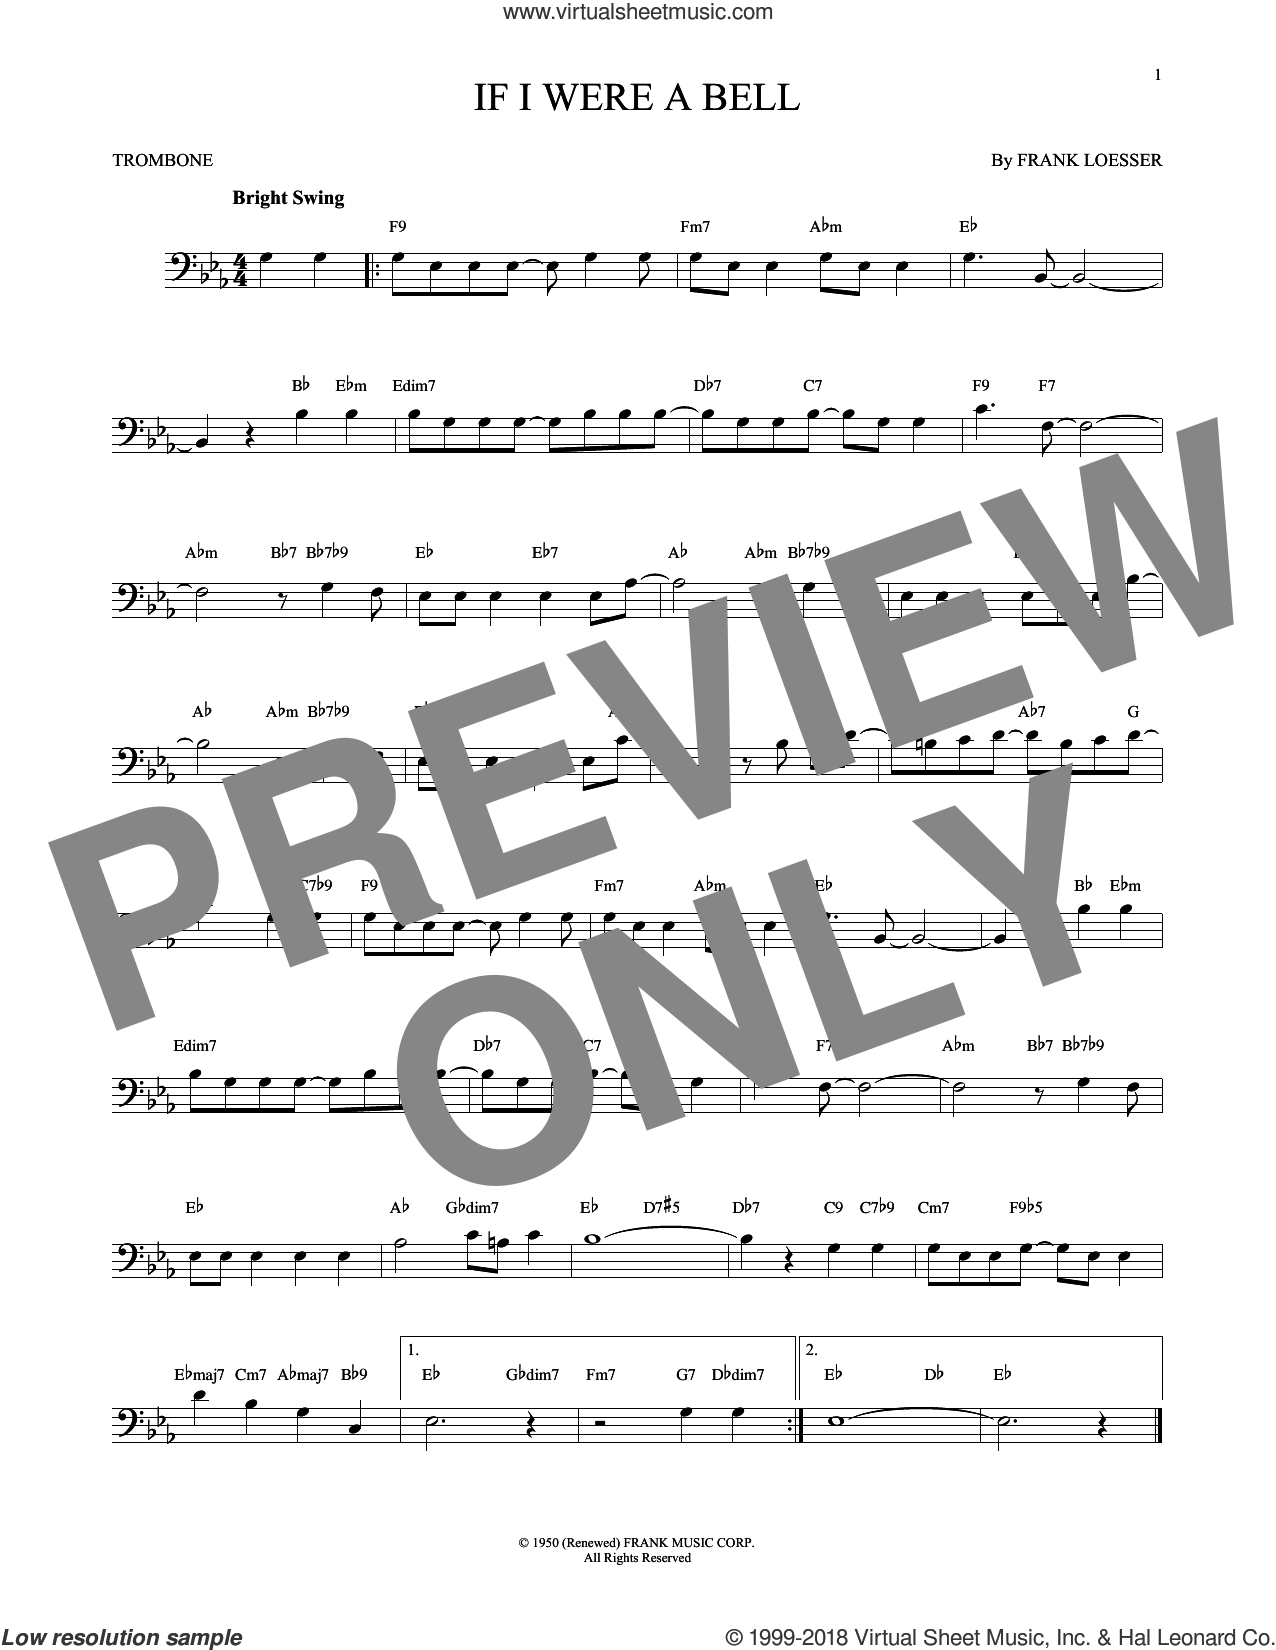 If I Were A Bell sheet music for trombone solo by Frank Loesser, intermediate skill level